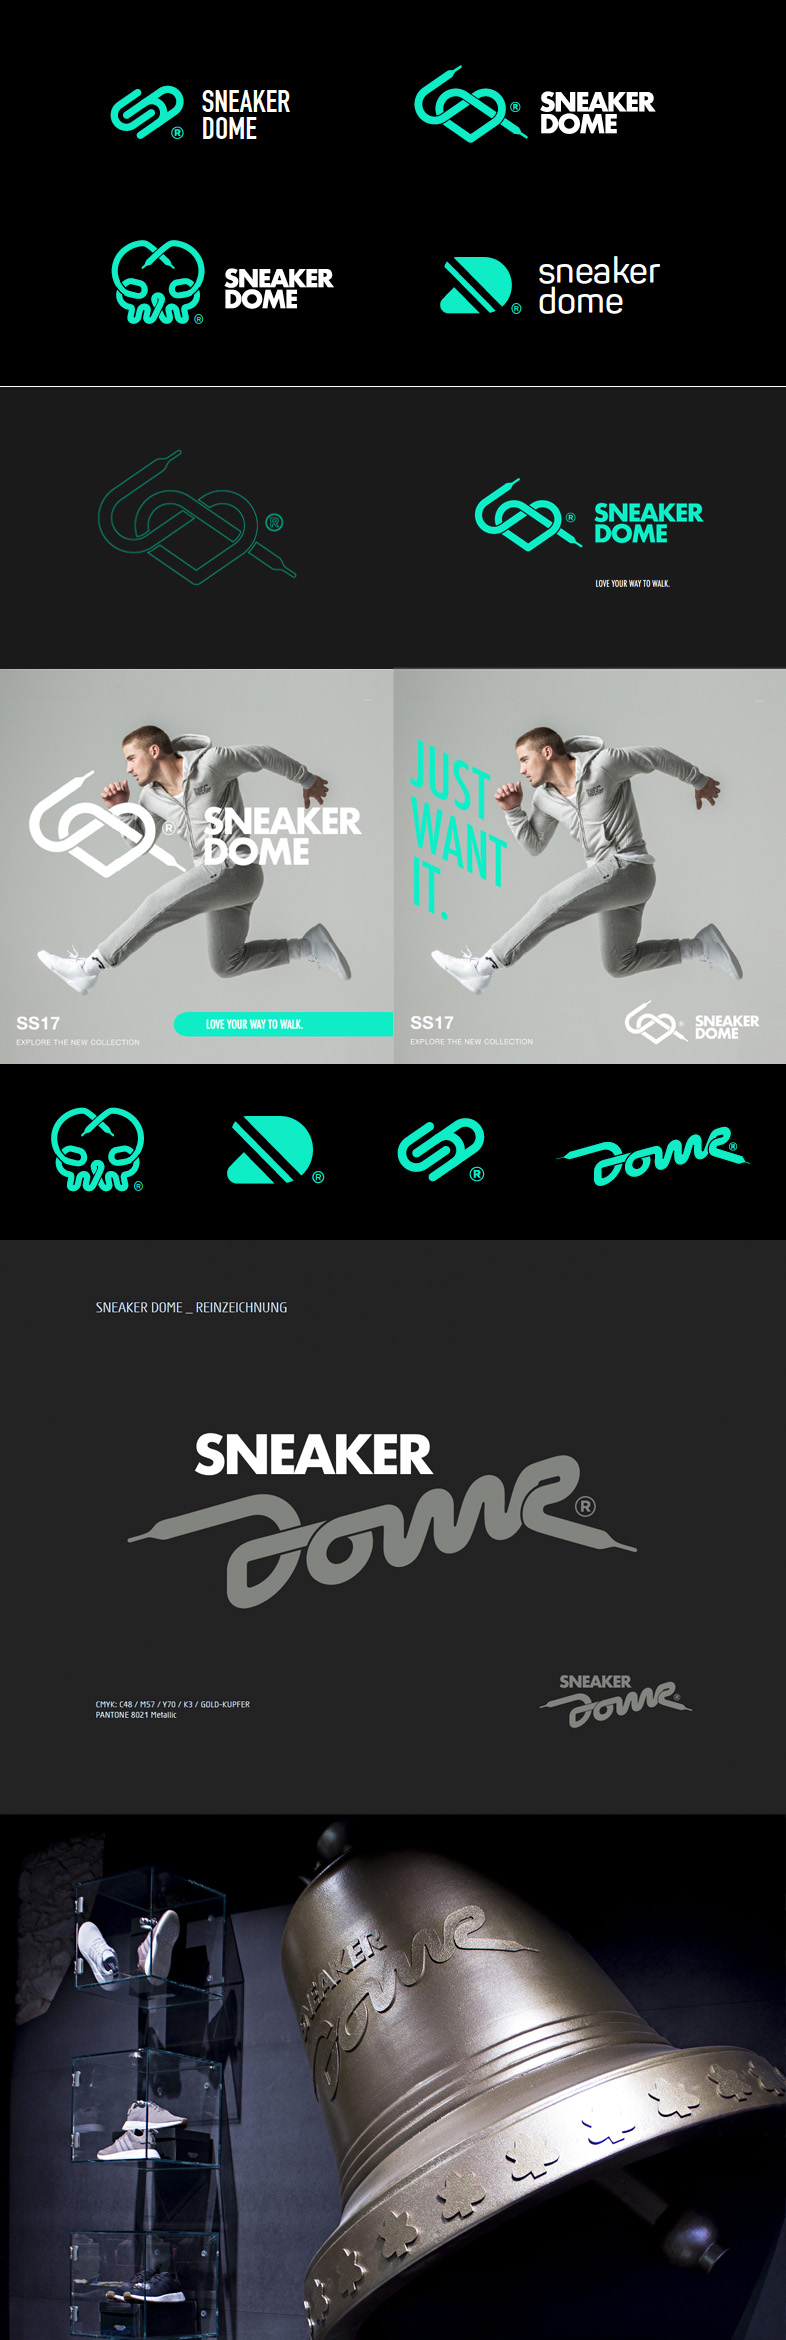 Sneaker Dome – LOVE YOUR WAY TO WALK.